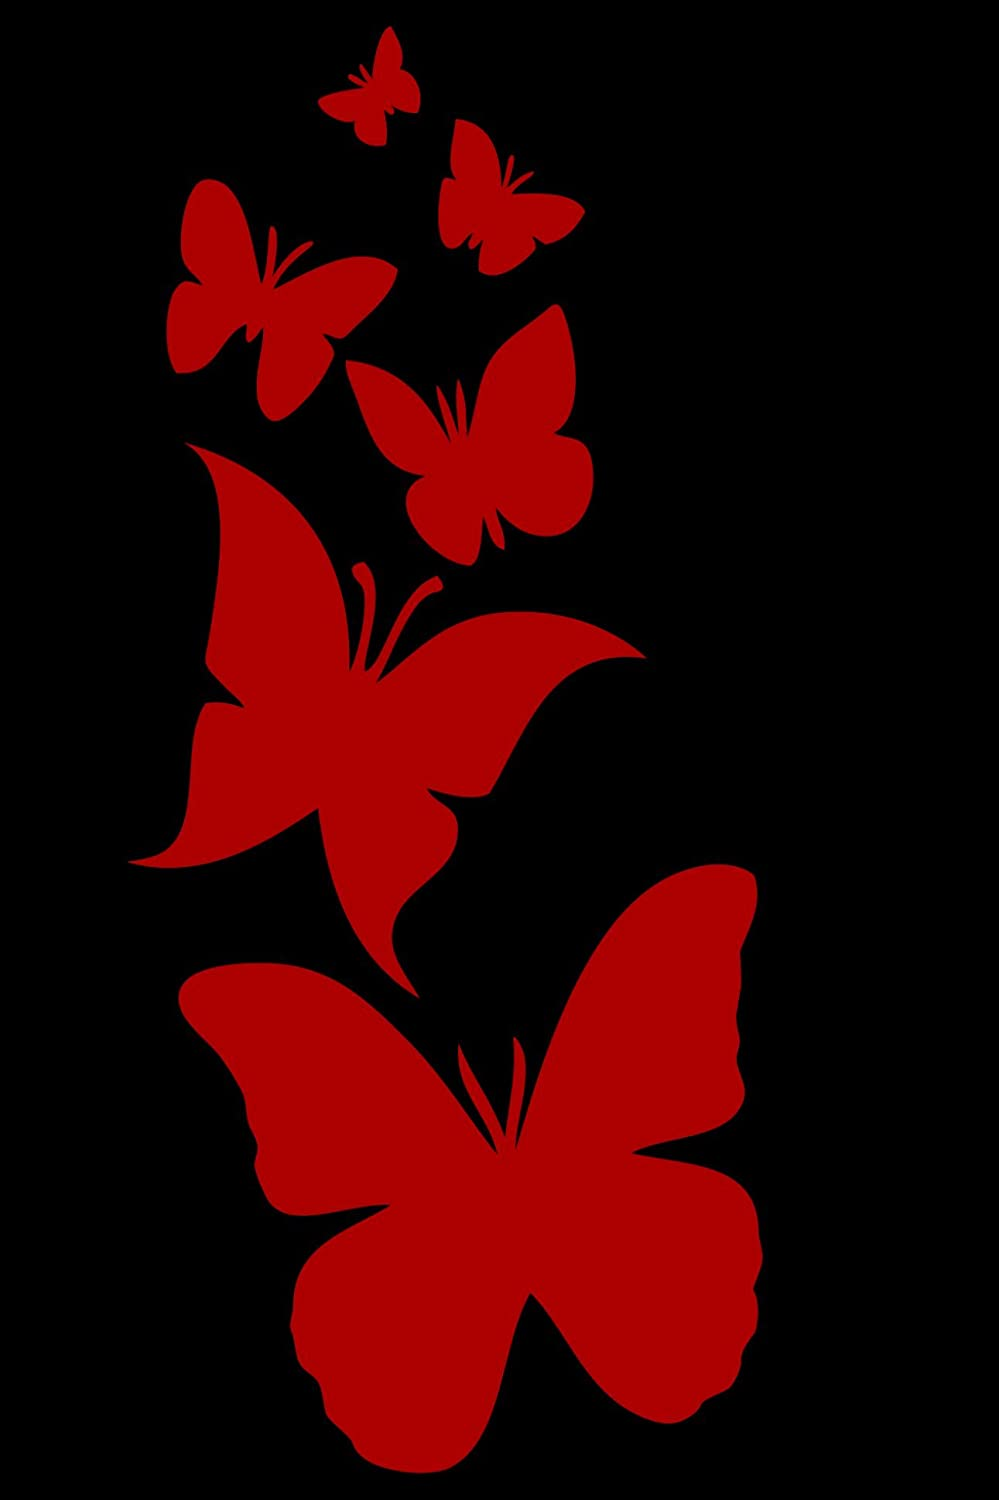 Laptop 3.5x8 Laptop 3.5x8 white Red Clay Designs 10-530 white Truck Butterfly Family- Die Cut Vinyl Window Decal//sticker for Car